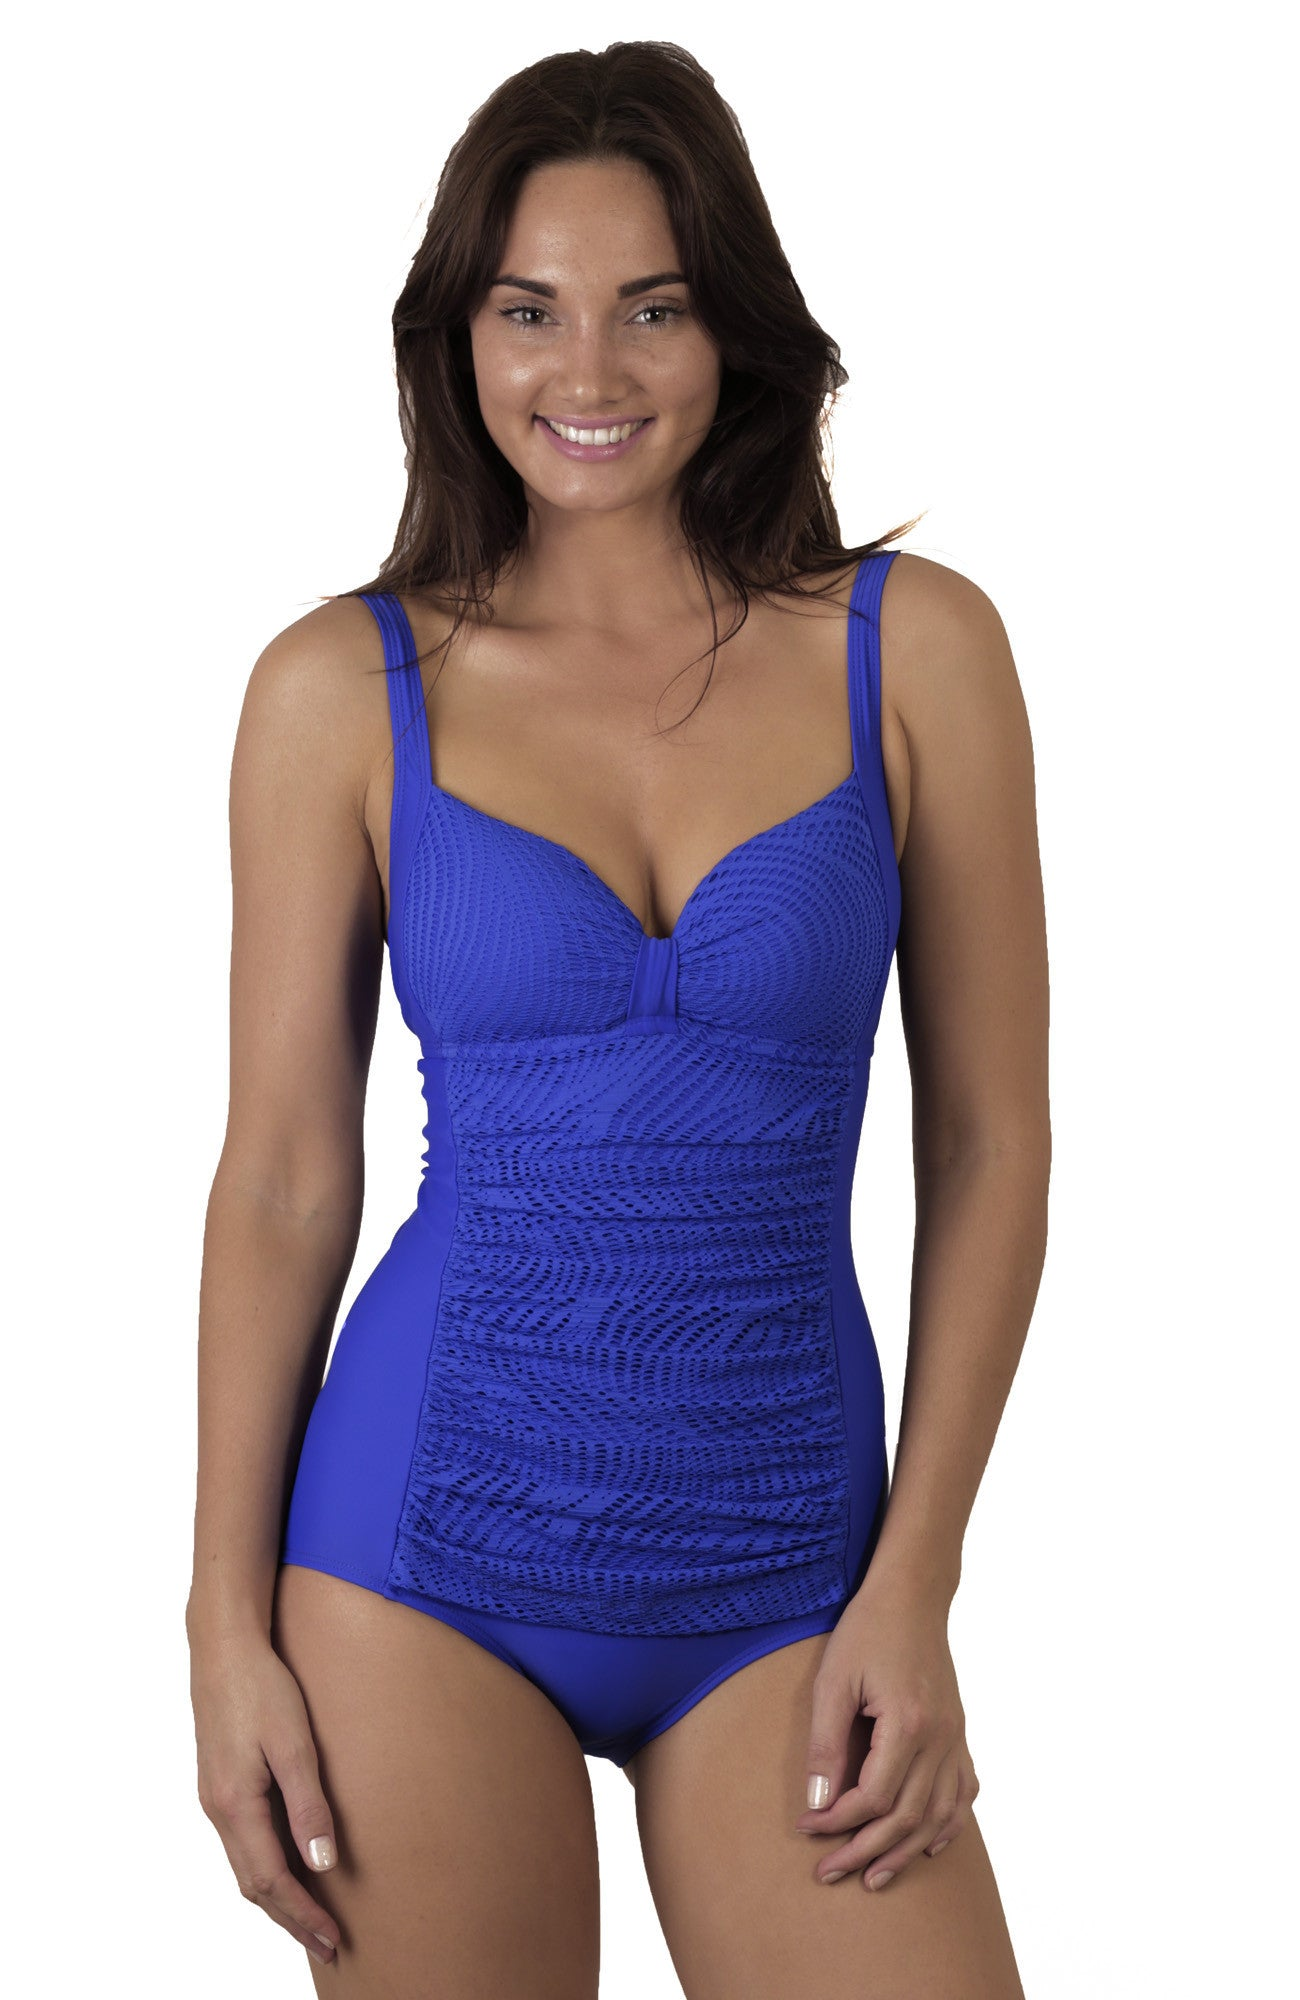 Finch Swim onepiece swimsuit with adjustable straps, removable cups, clip back, mesh support for a full bust.